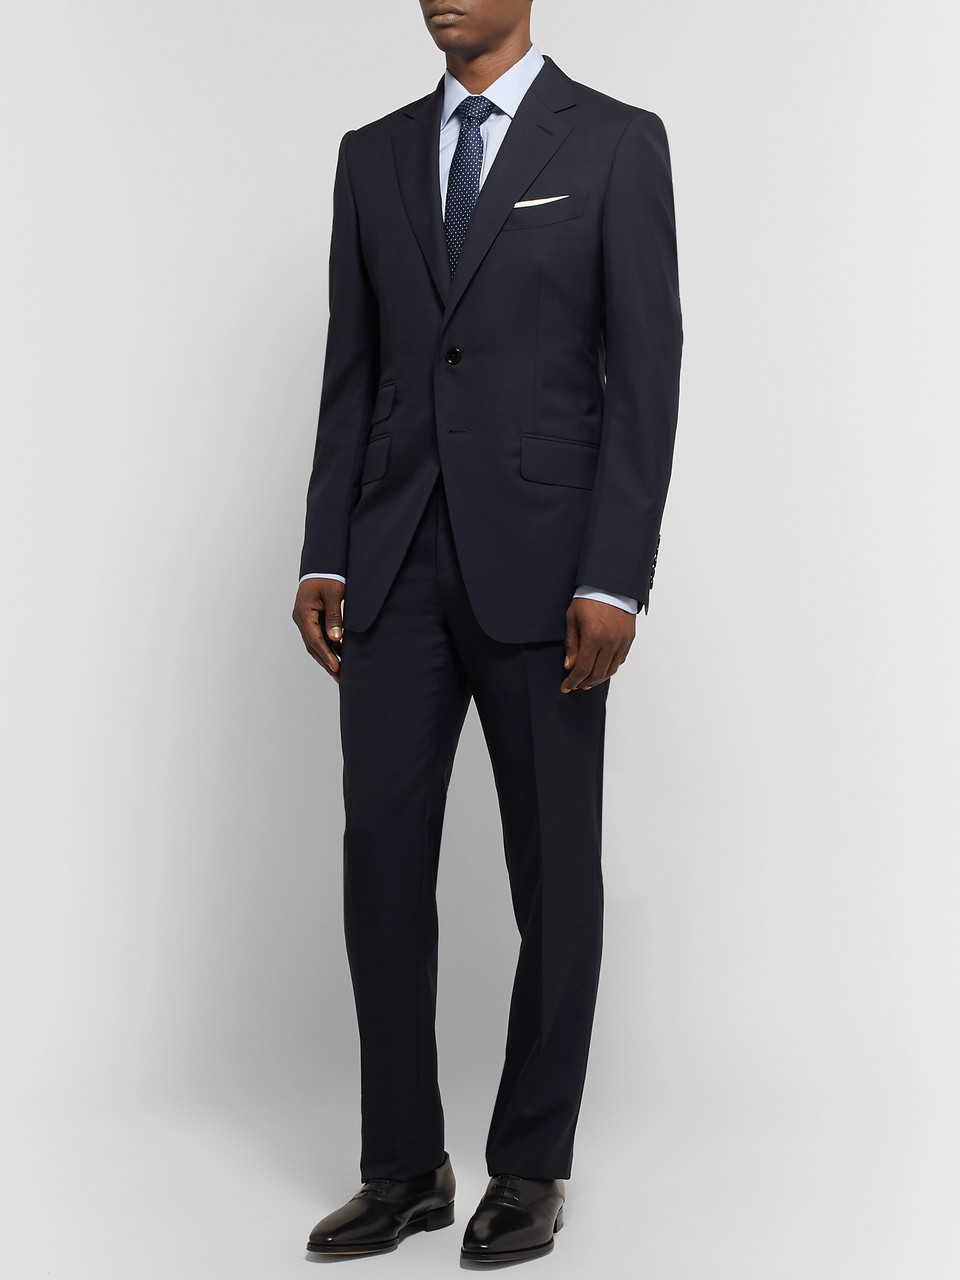 TOM FORD Navy O'Connor Slim-Fit Wool Suit Jacket